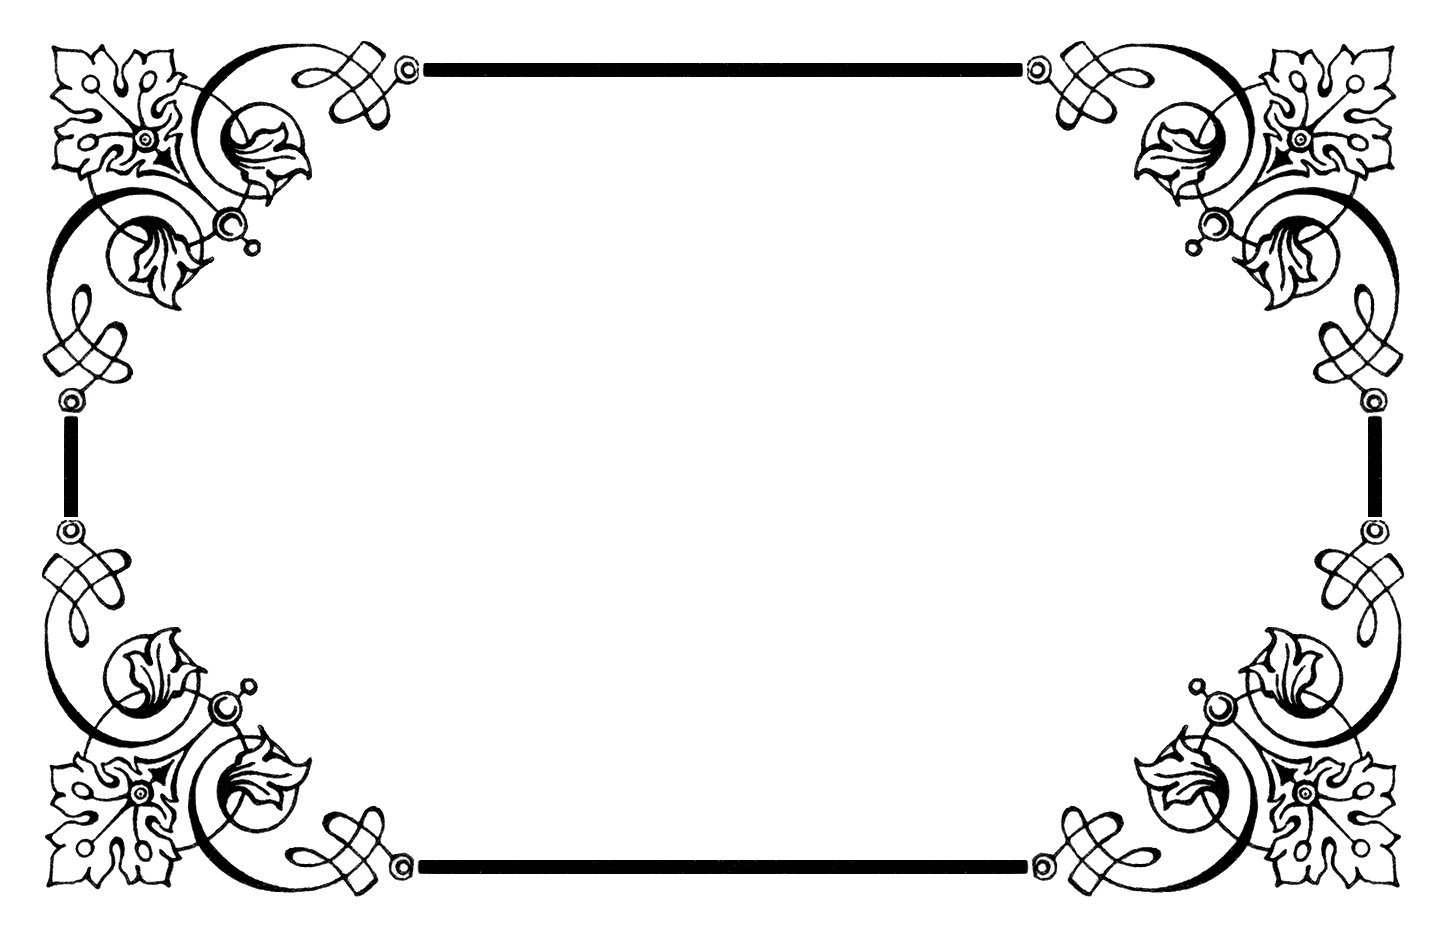 Old fashioned border clipart no fill.